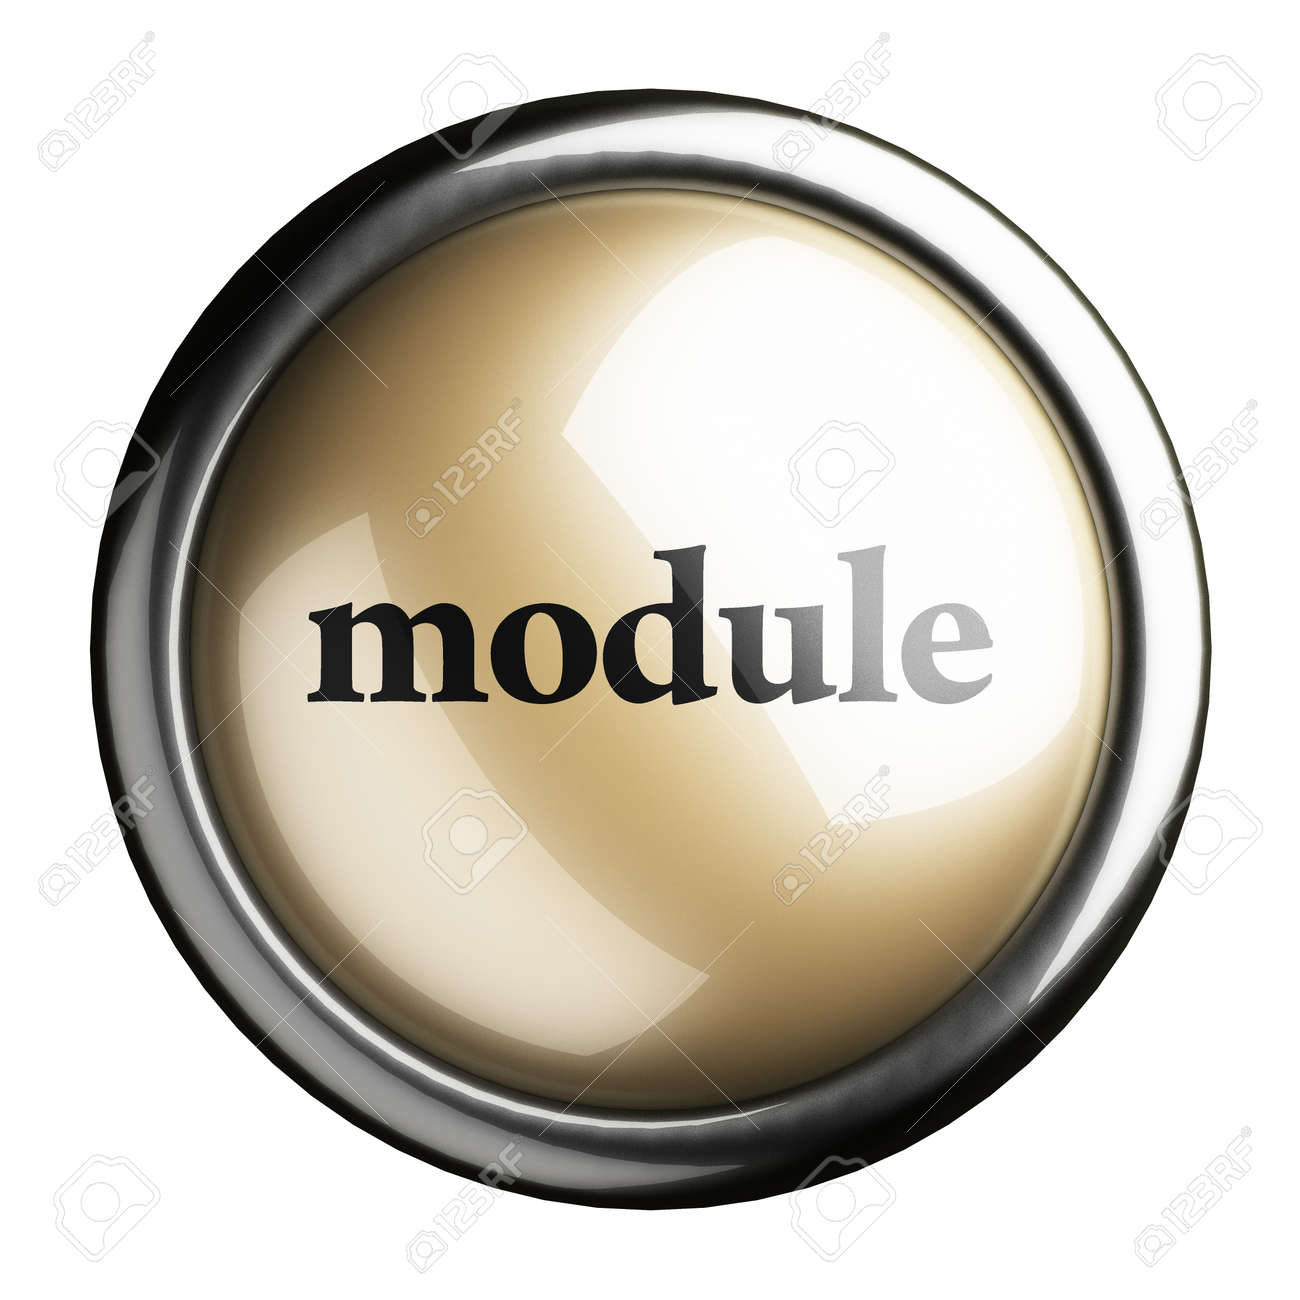 Word on the button Stock Photo - 17704211